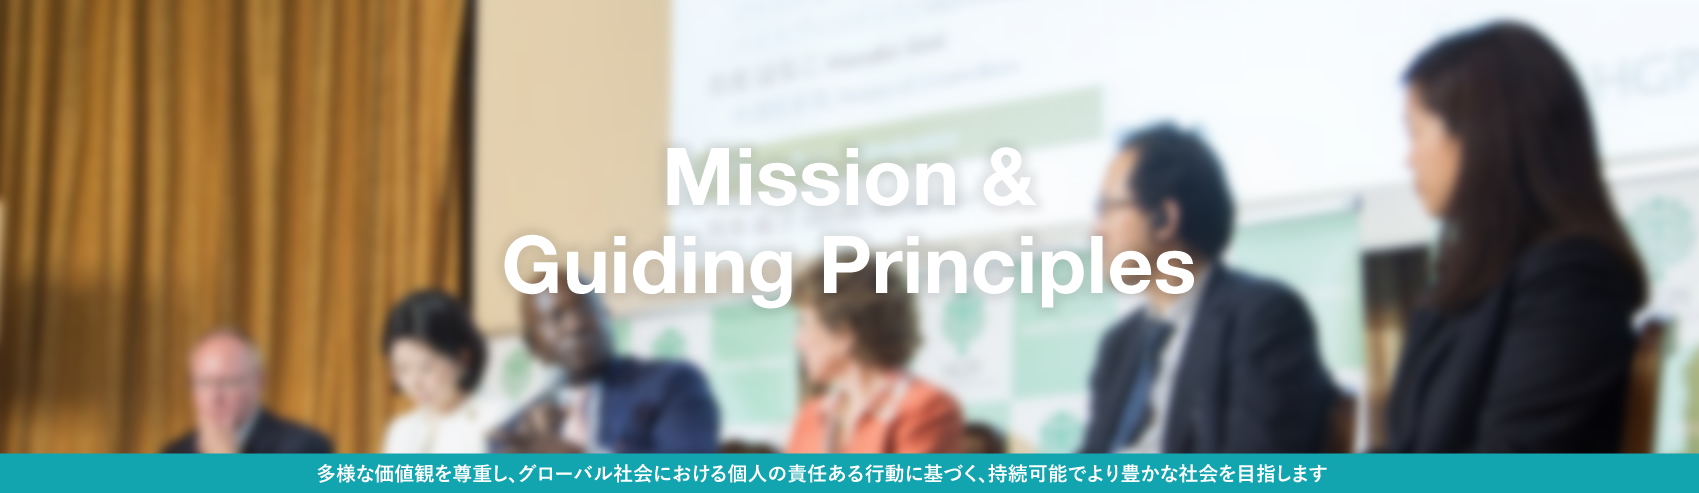 Mission & Guiding Principales